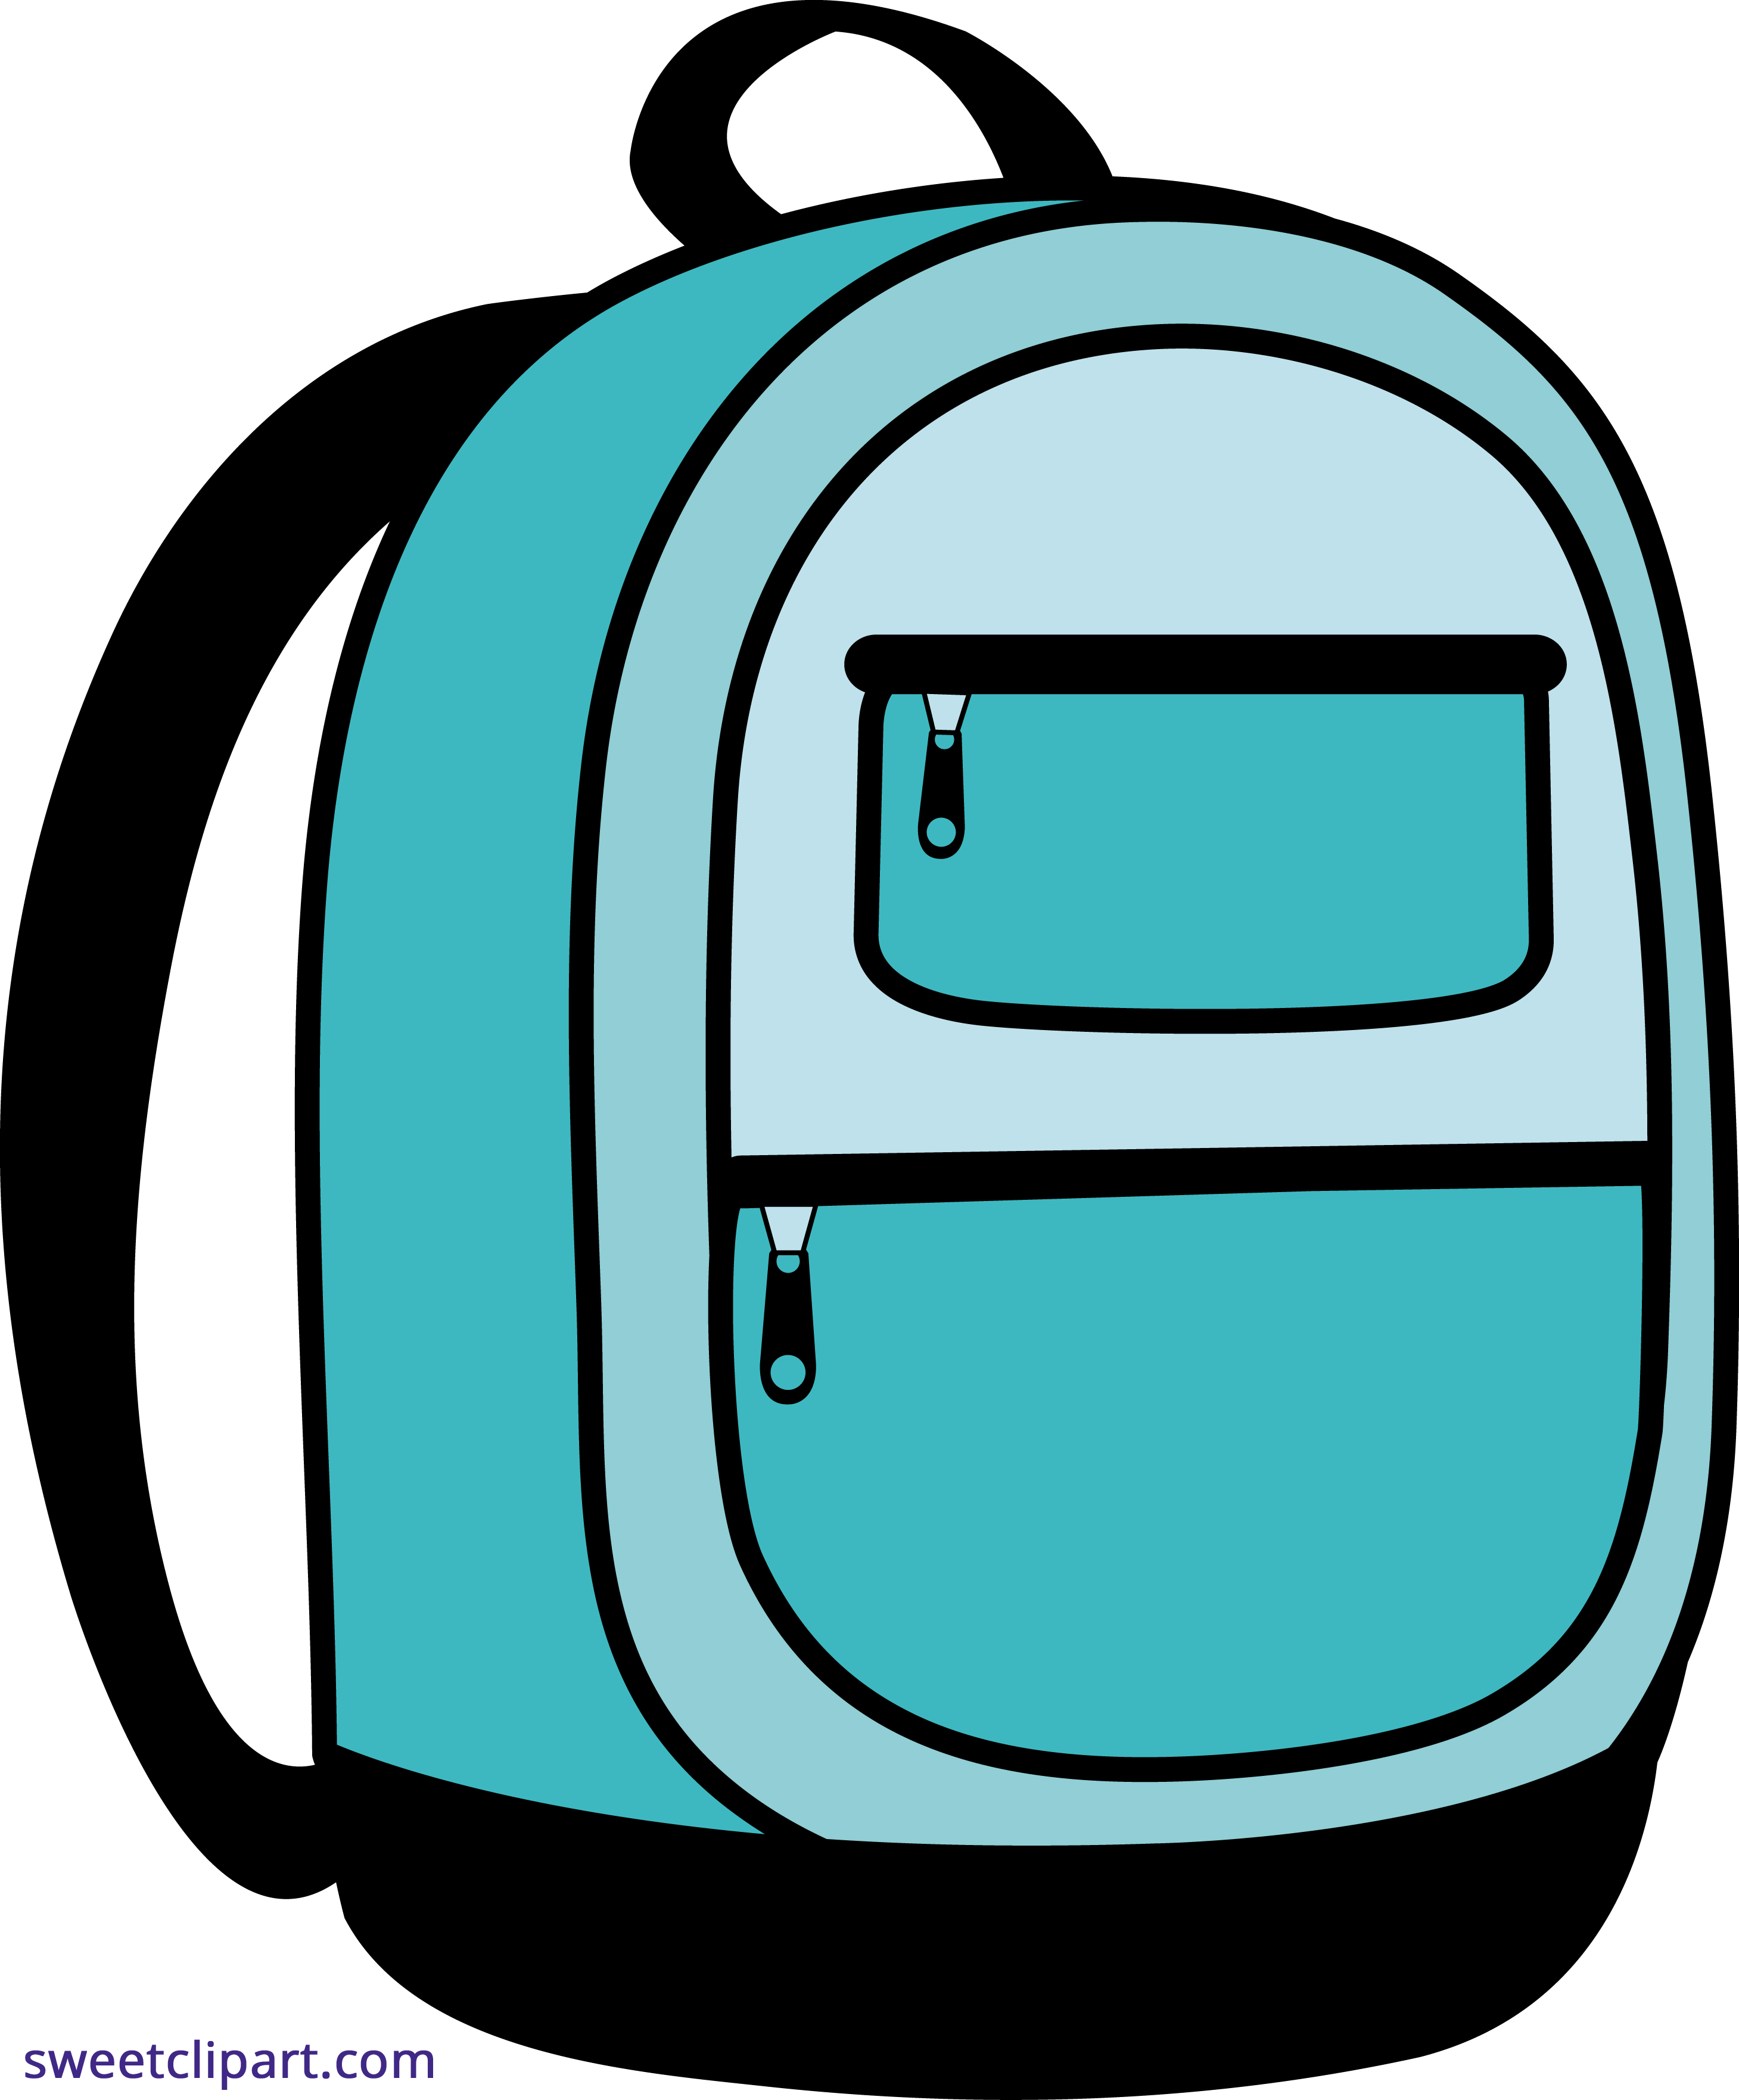 Bacjpack clipart png freeuse stock Blue School Backpack Clipart - Sweet Clip Art png freeuse stock